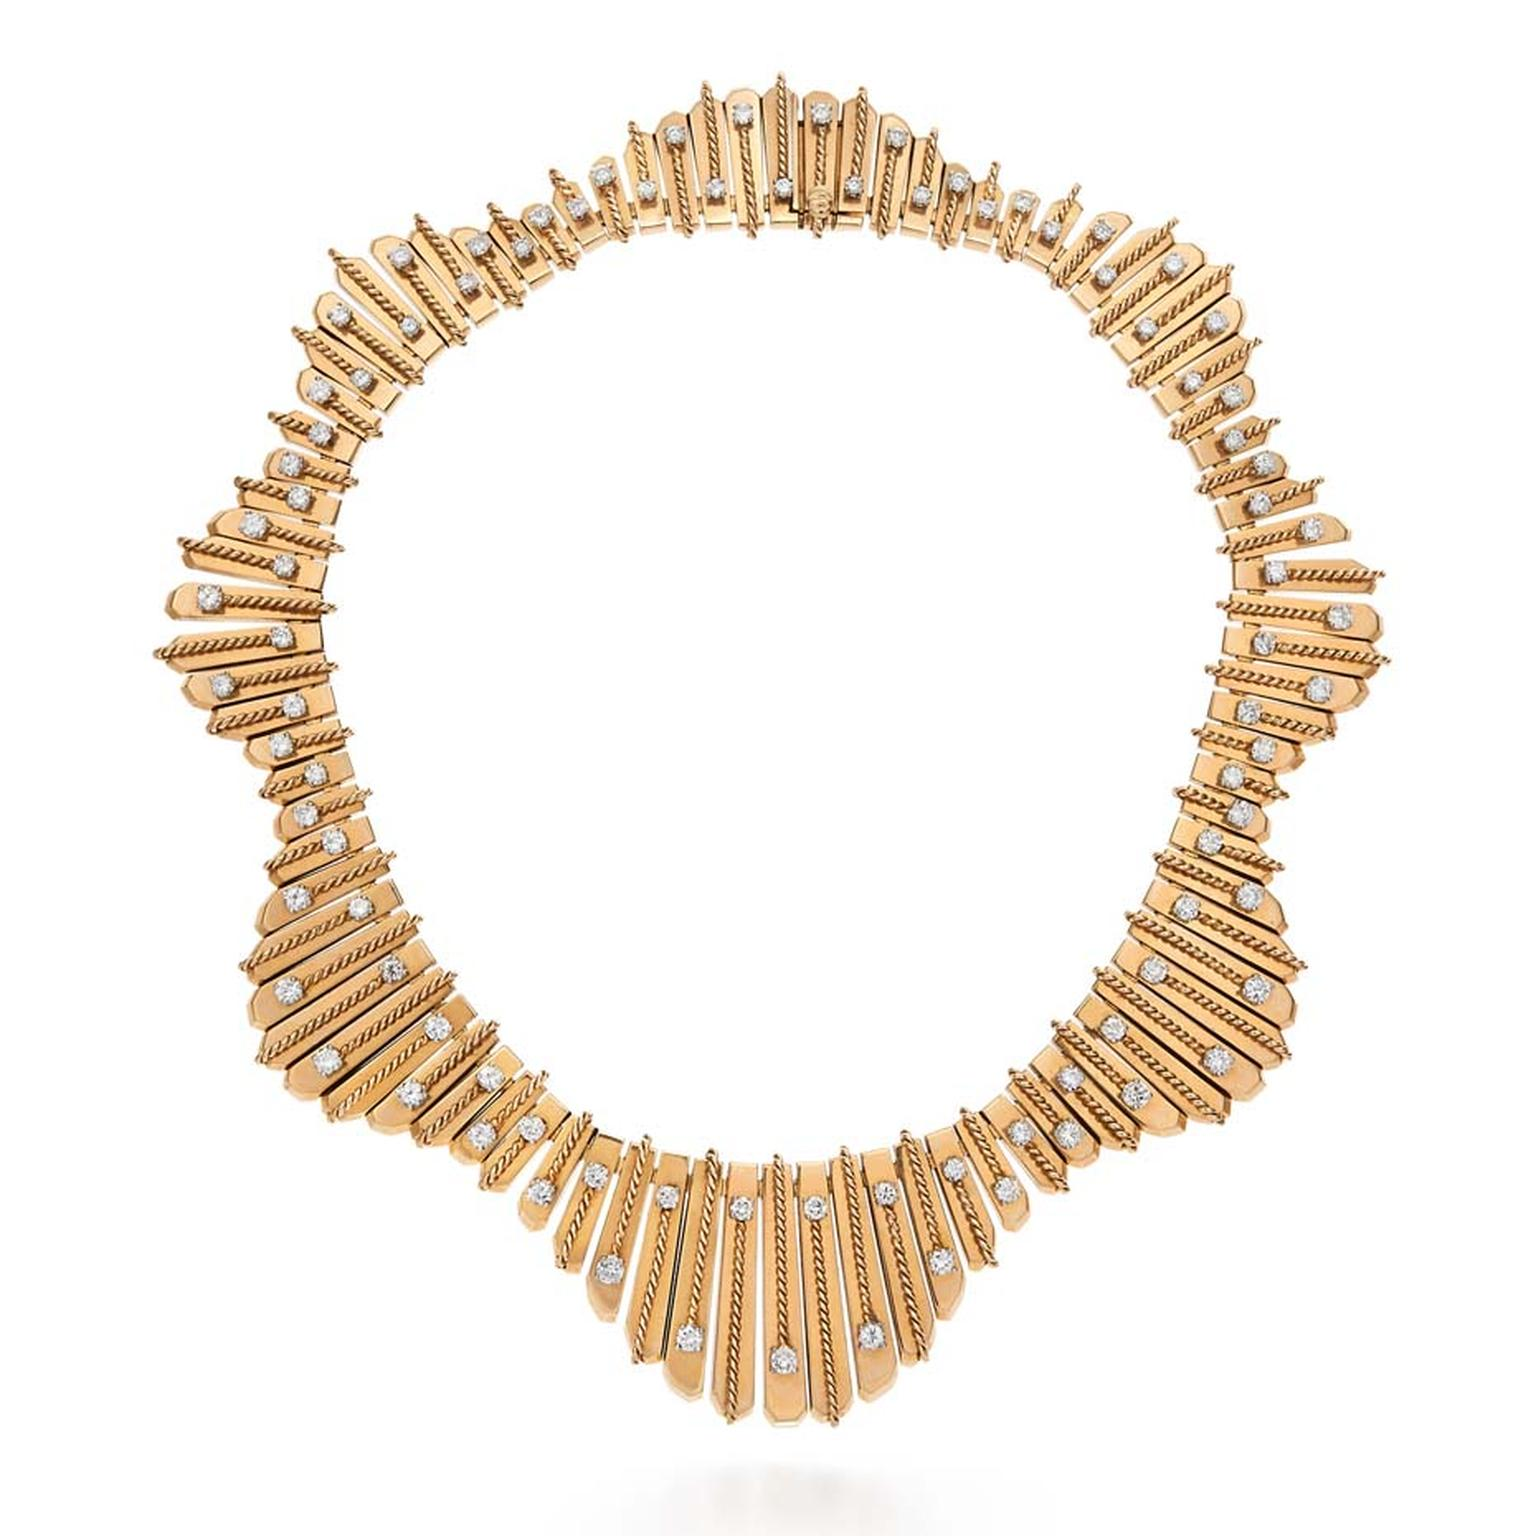 1950s Cartier Paris Undulating Fringe diamond necklace in gold, available from Fred Leighton at 1stdibs.com ($145,000).